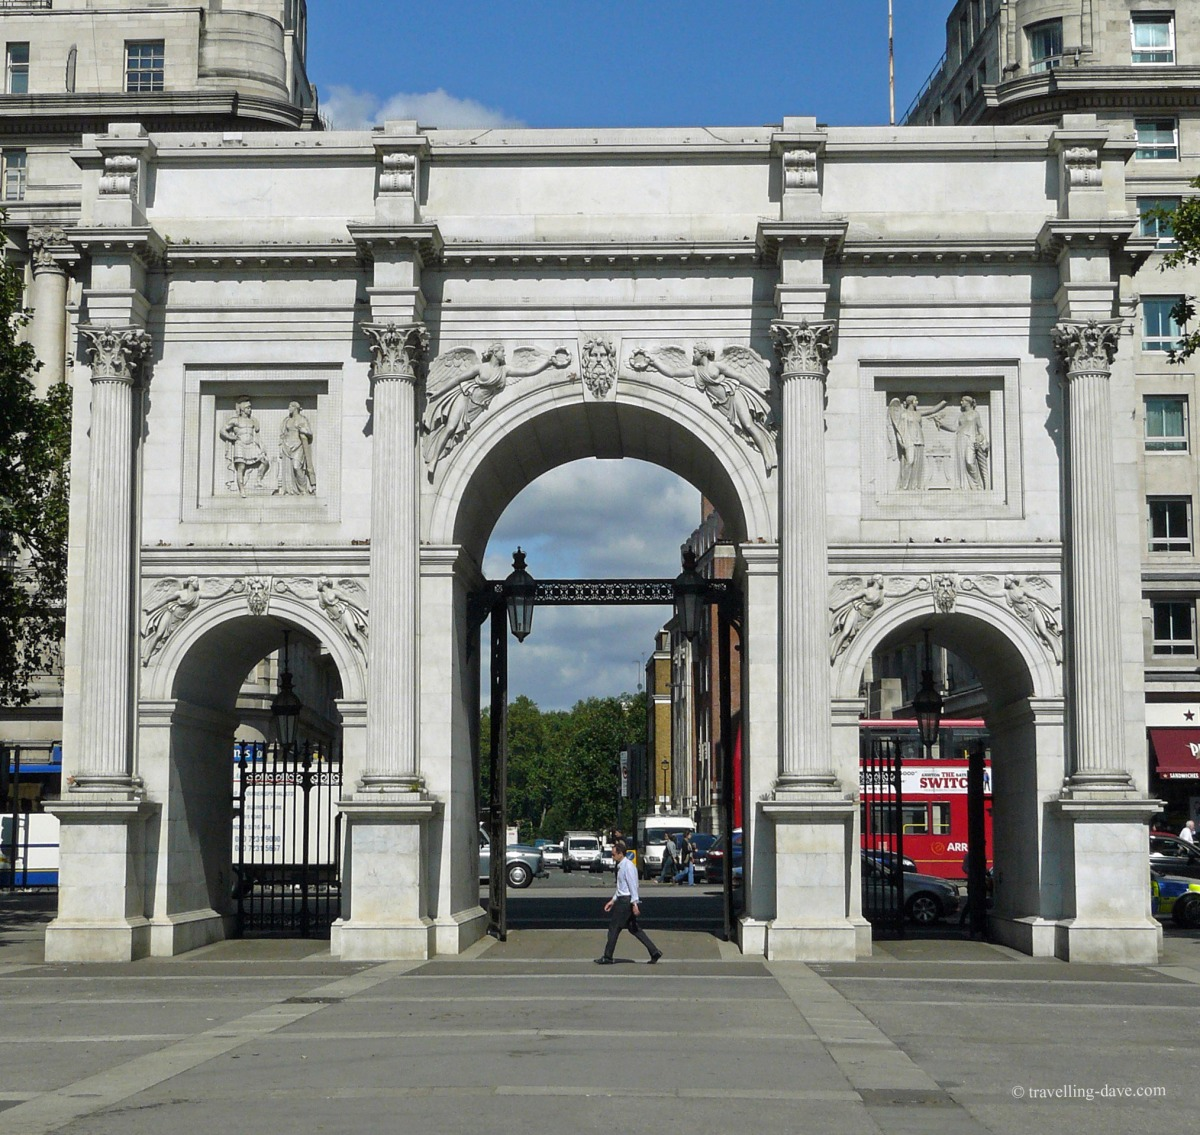 View of London's Marble Arch